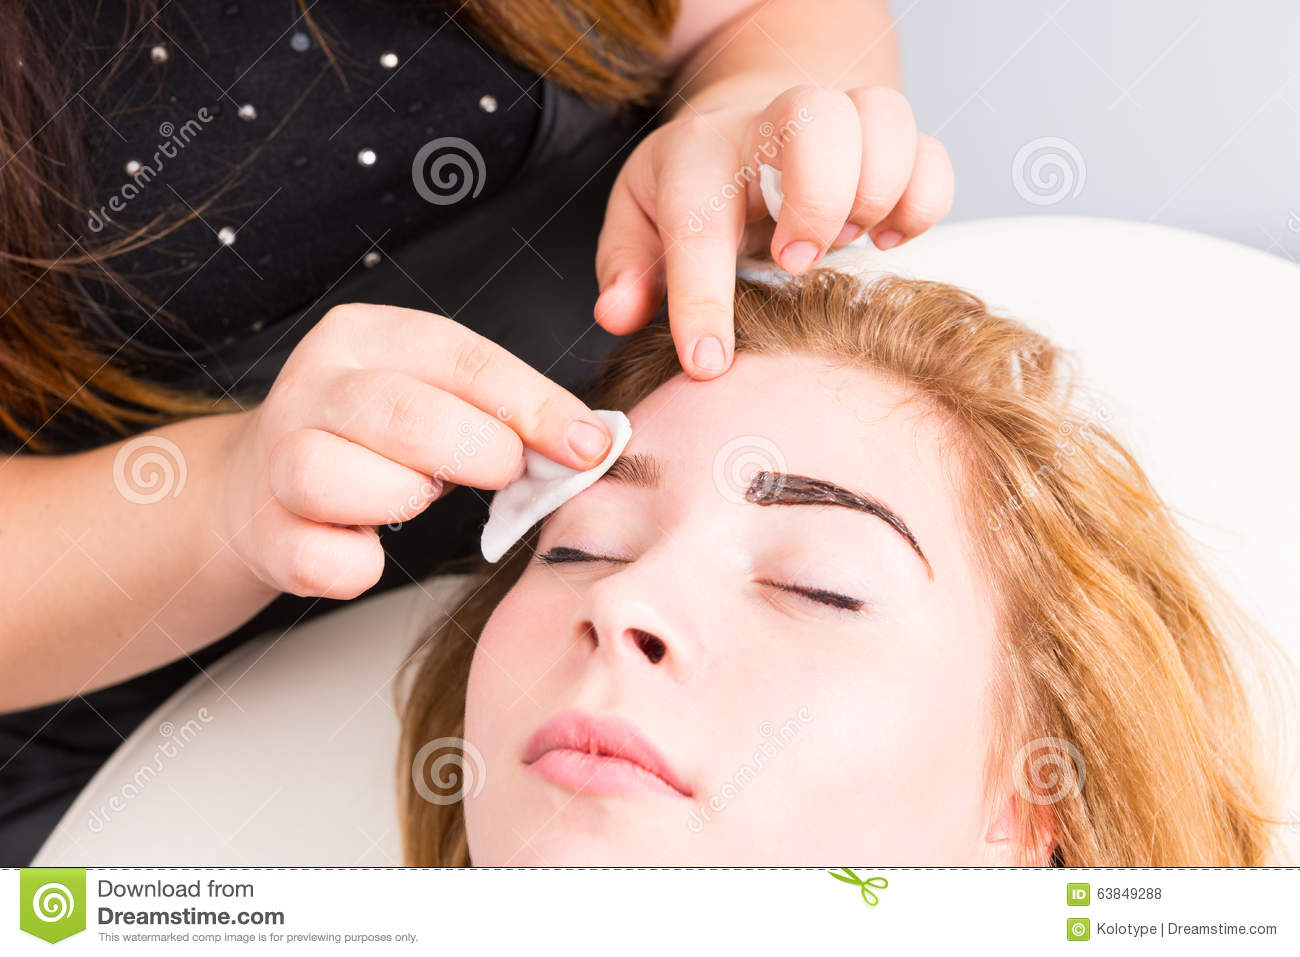 Esthetician Tidying Eyebrows Of Female Client Stock Photo - Image of ...